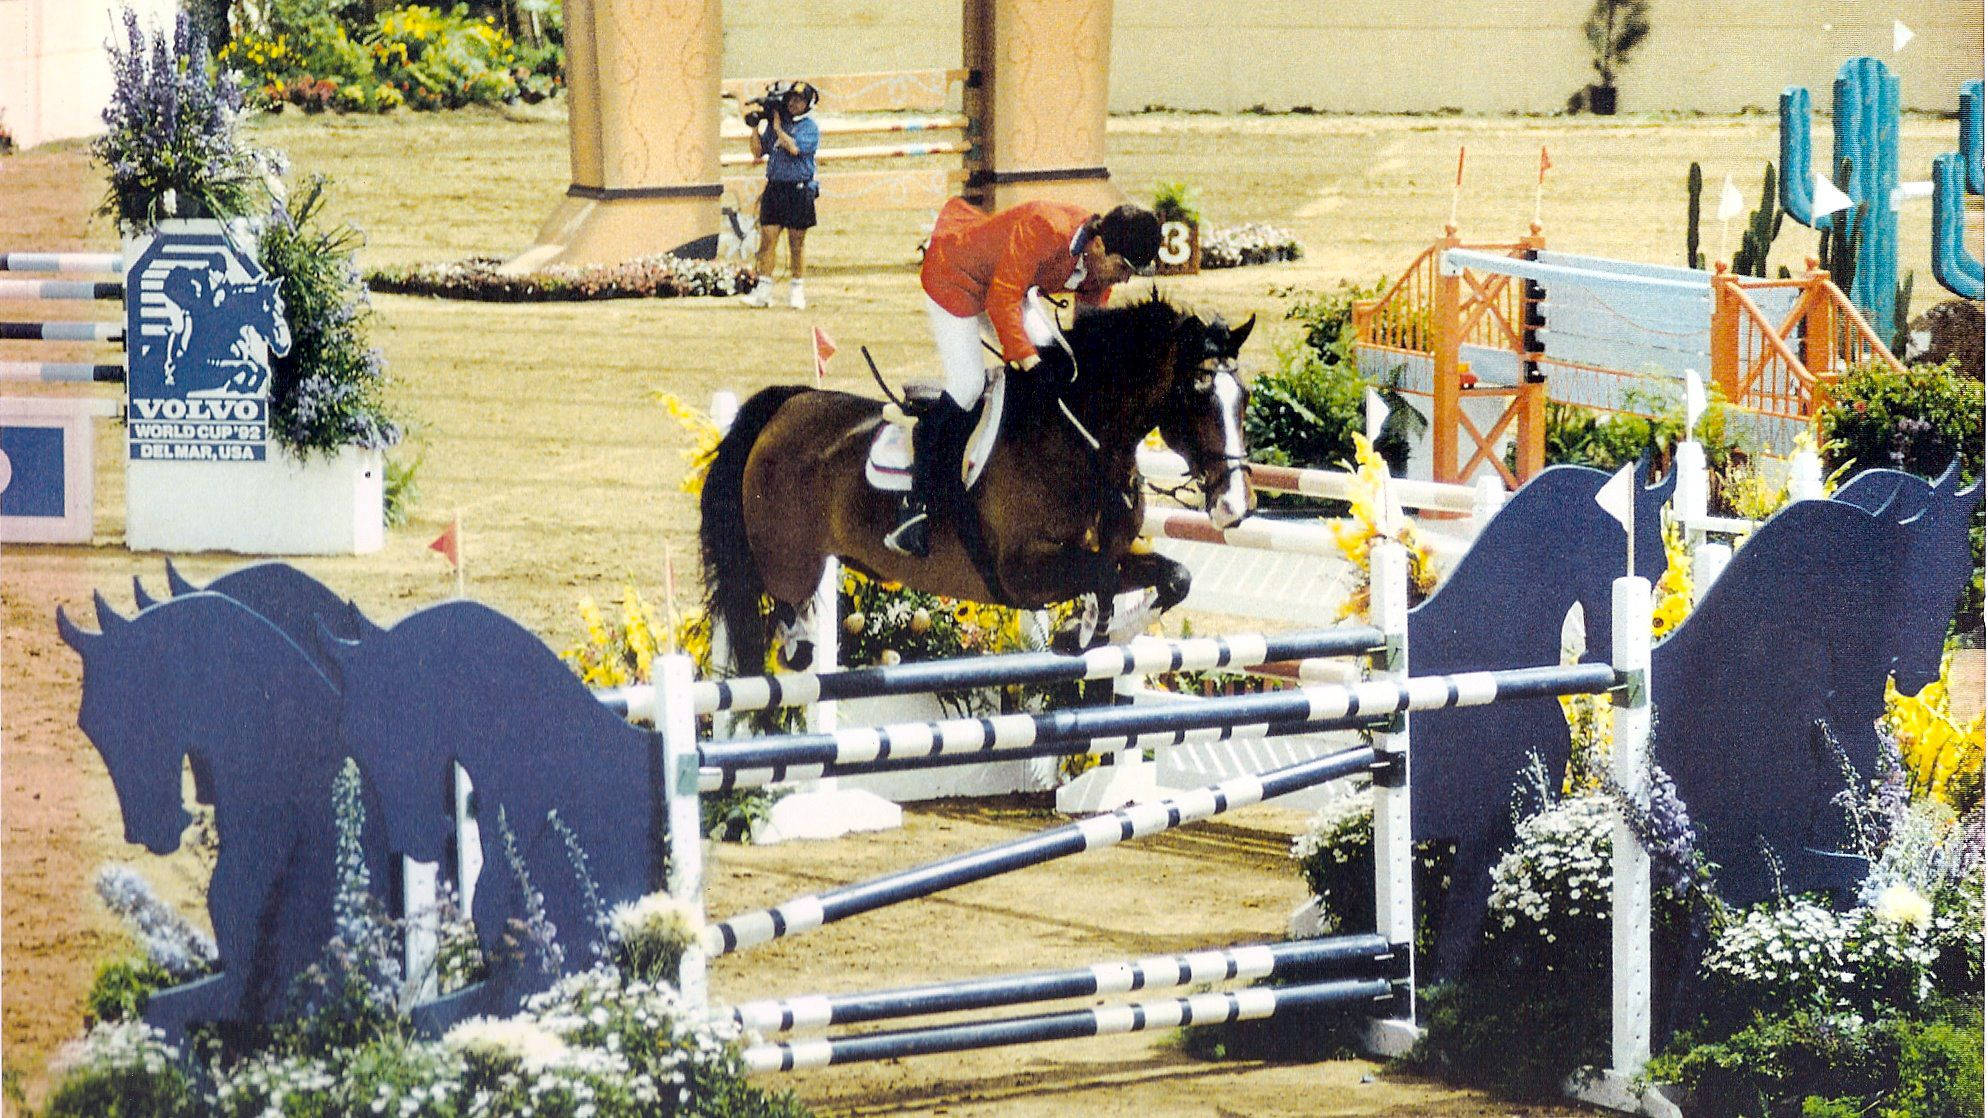 Bernie Traurig will help you soar to new heights as he covers topics on Hunters and Jumpers at the 2015 Equine Affaire in Massachusetts.